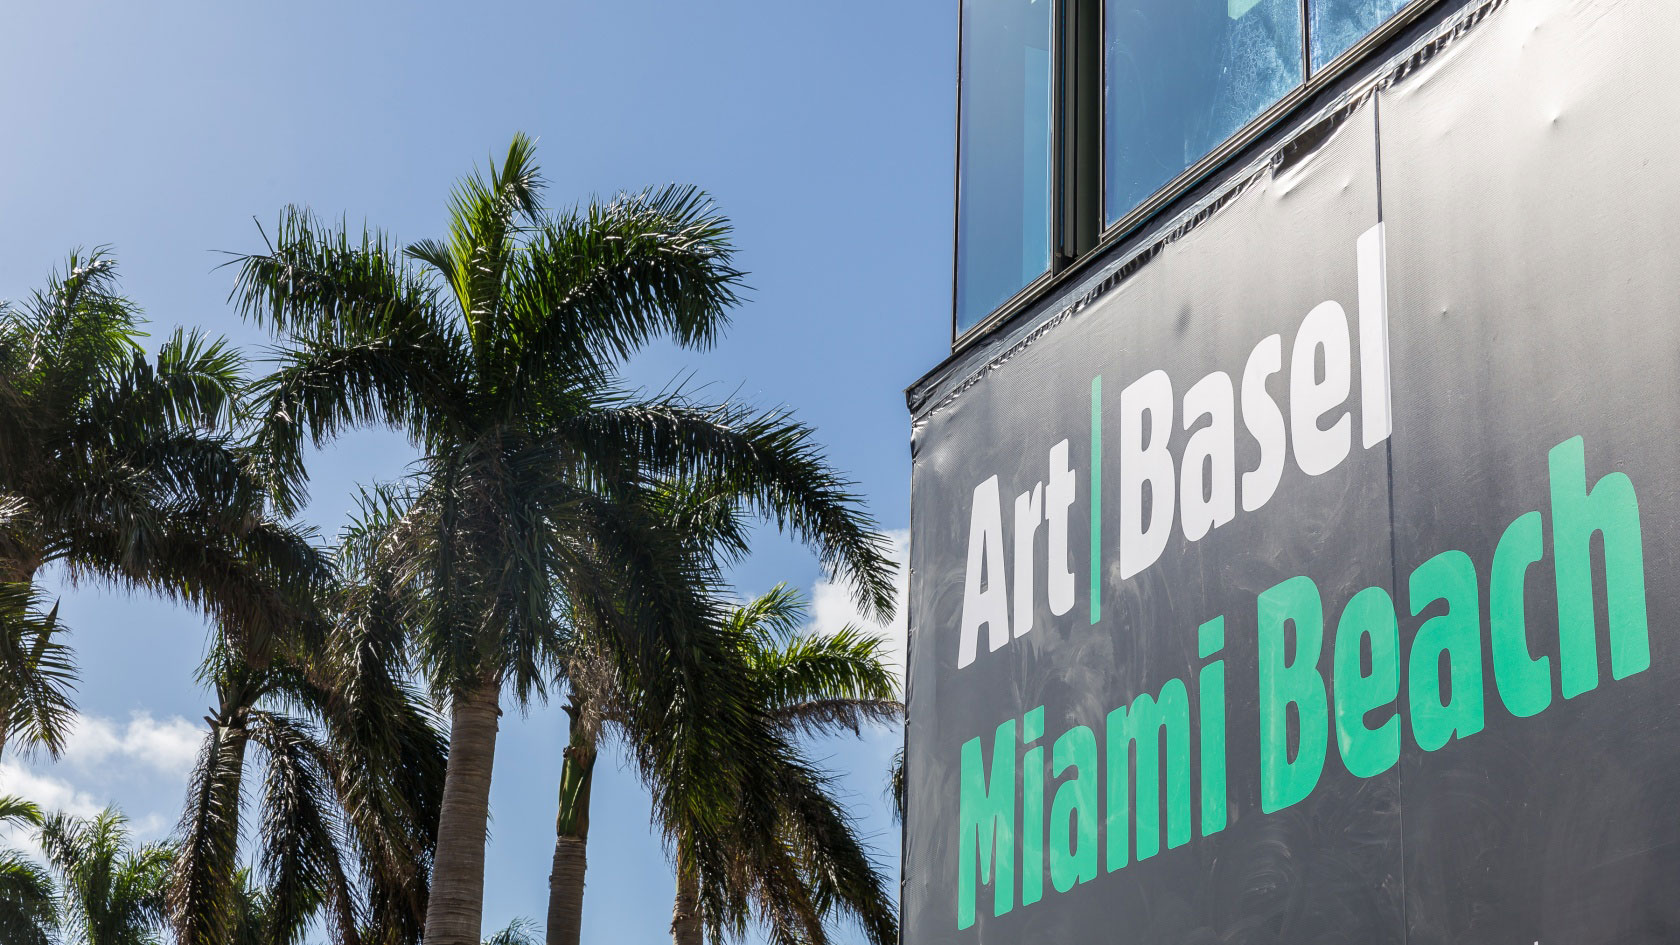 art-basel-miami-beach-article-image-01.jpg_asset_1554799909138.jpg